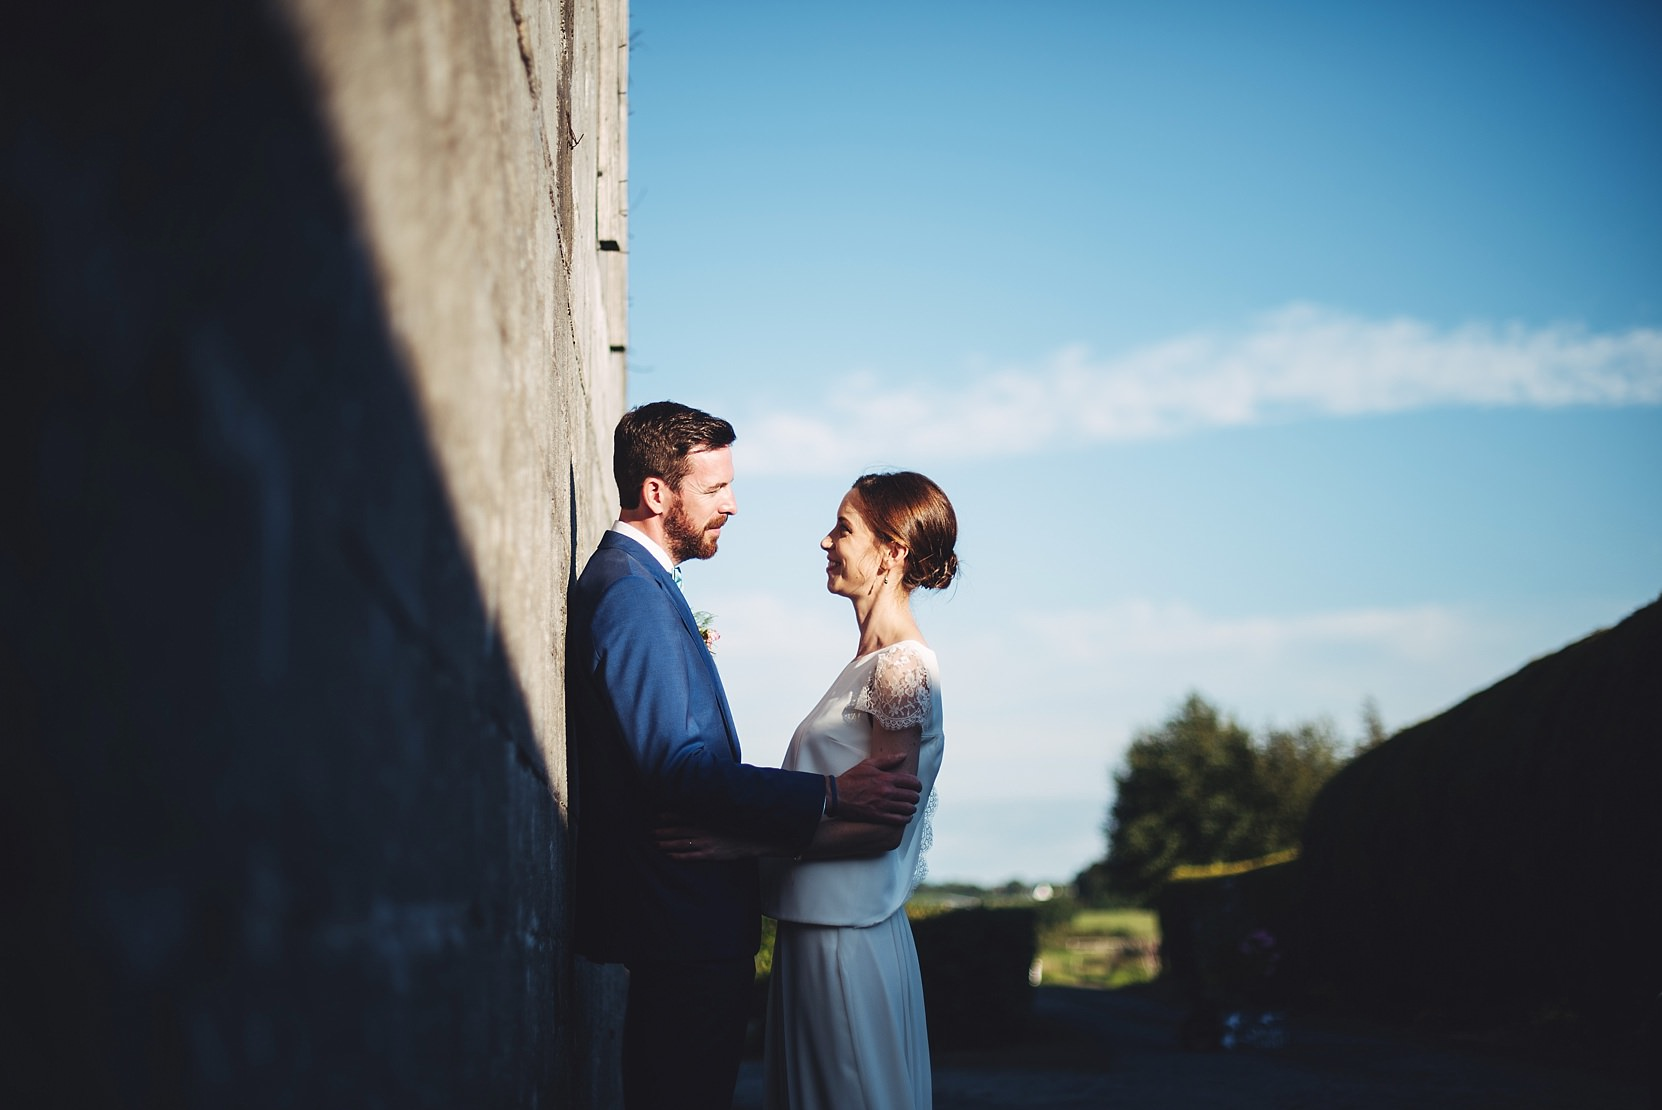 Bride and groom standing at a wall at a wedding in good light with the sky in the background